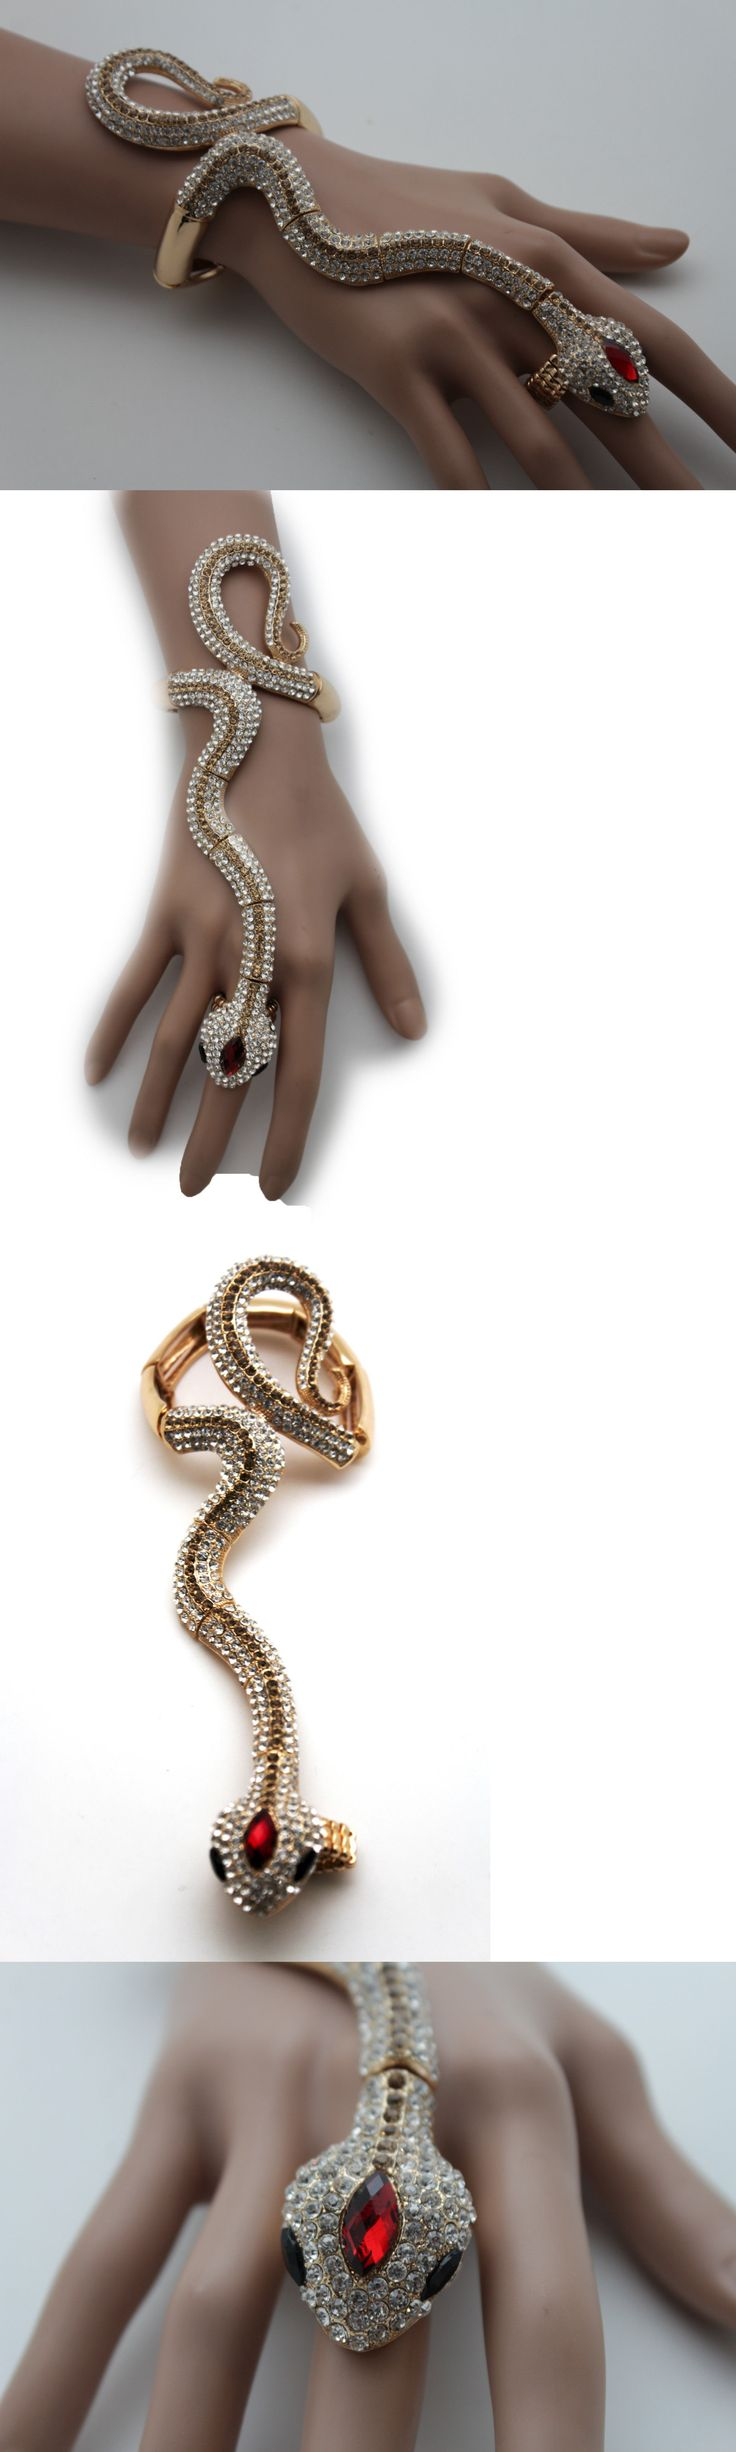 Bracelets 50637: Women Gold Slave Hand Chain Bracelet Elastic Ring Jewelry Long Snake Wrap Around BUY IT NOW ONLY: $34.99